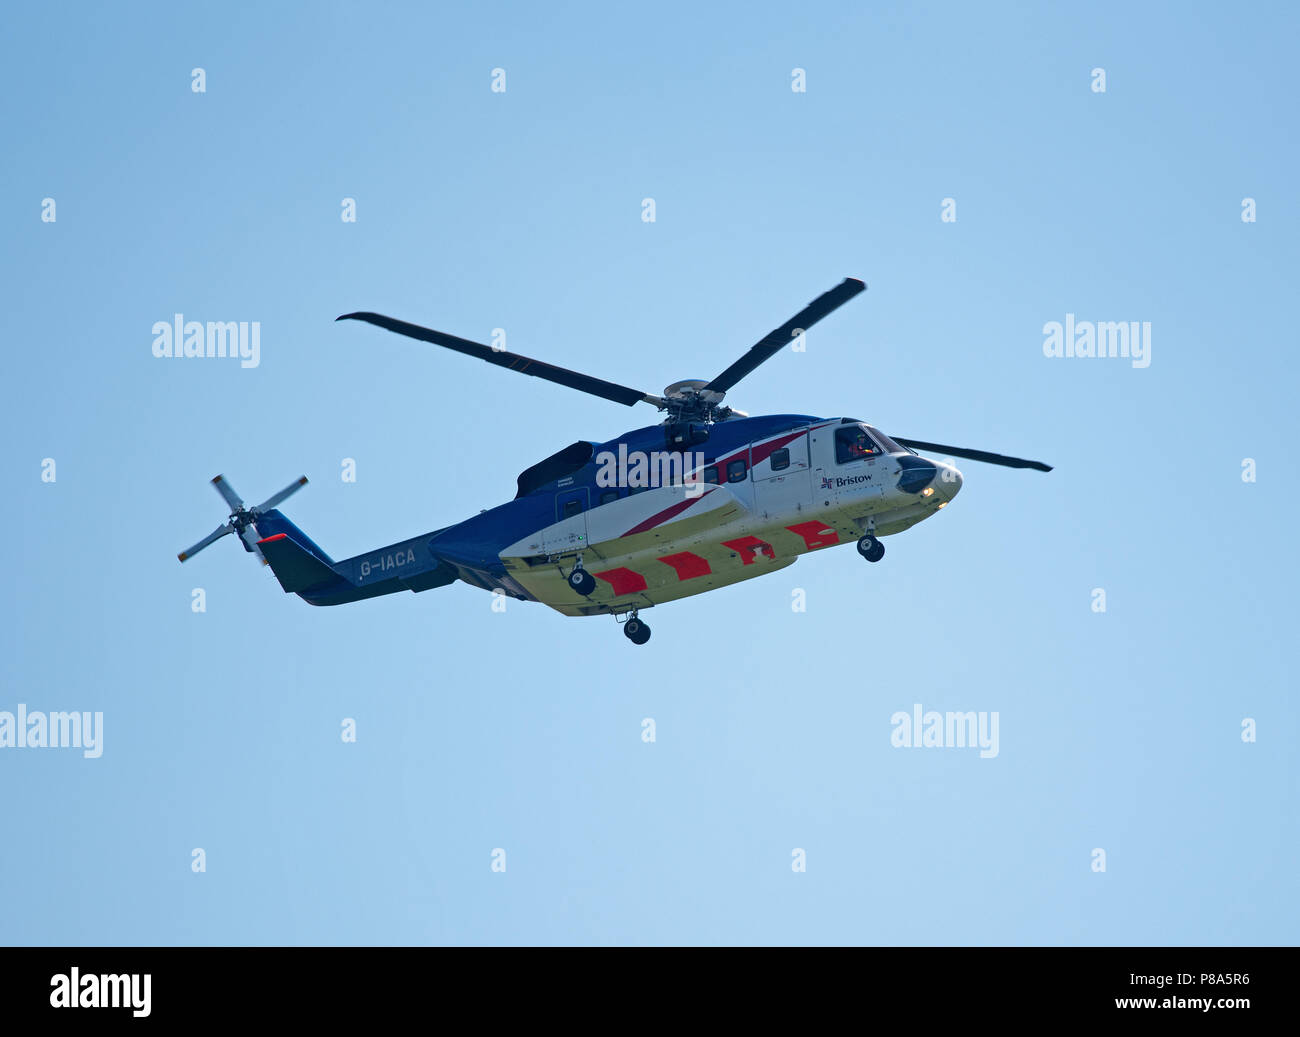 A Bristow S-92 Helicopter departs Aberdeen Dyce Airport for the North sea with worker ready to change shifts. - Stock Image